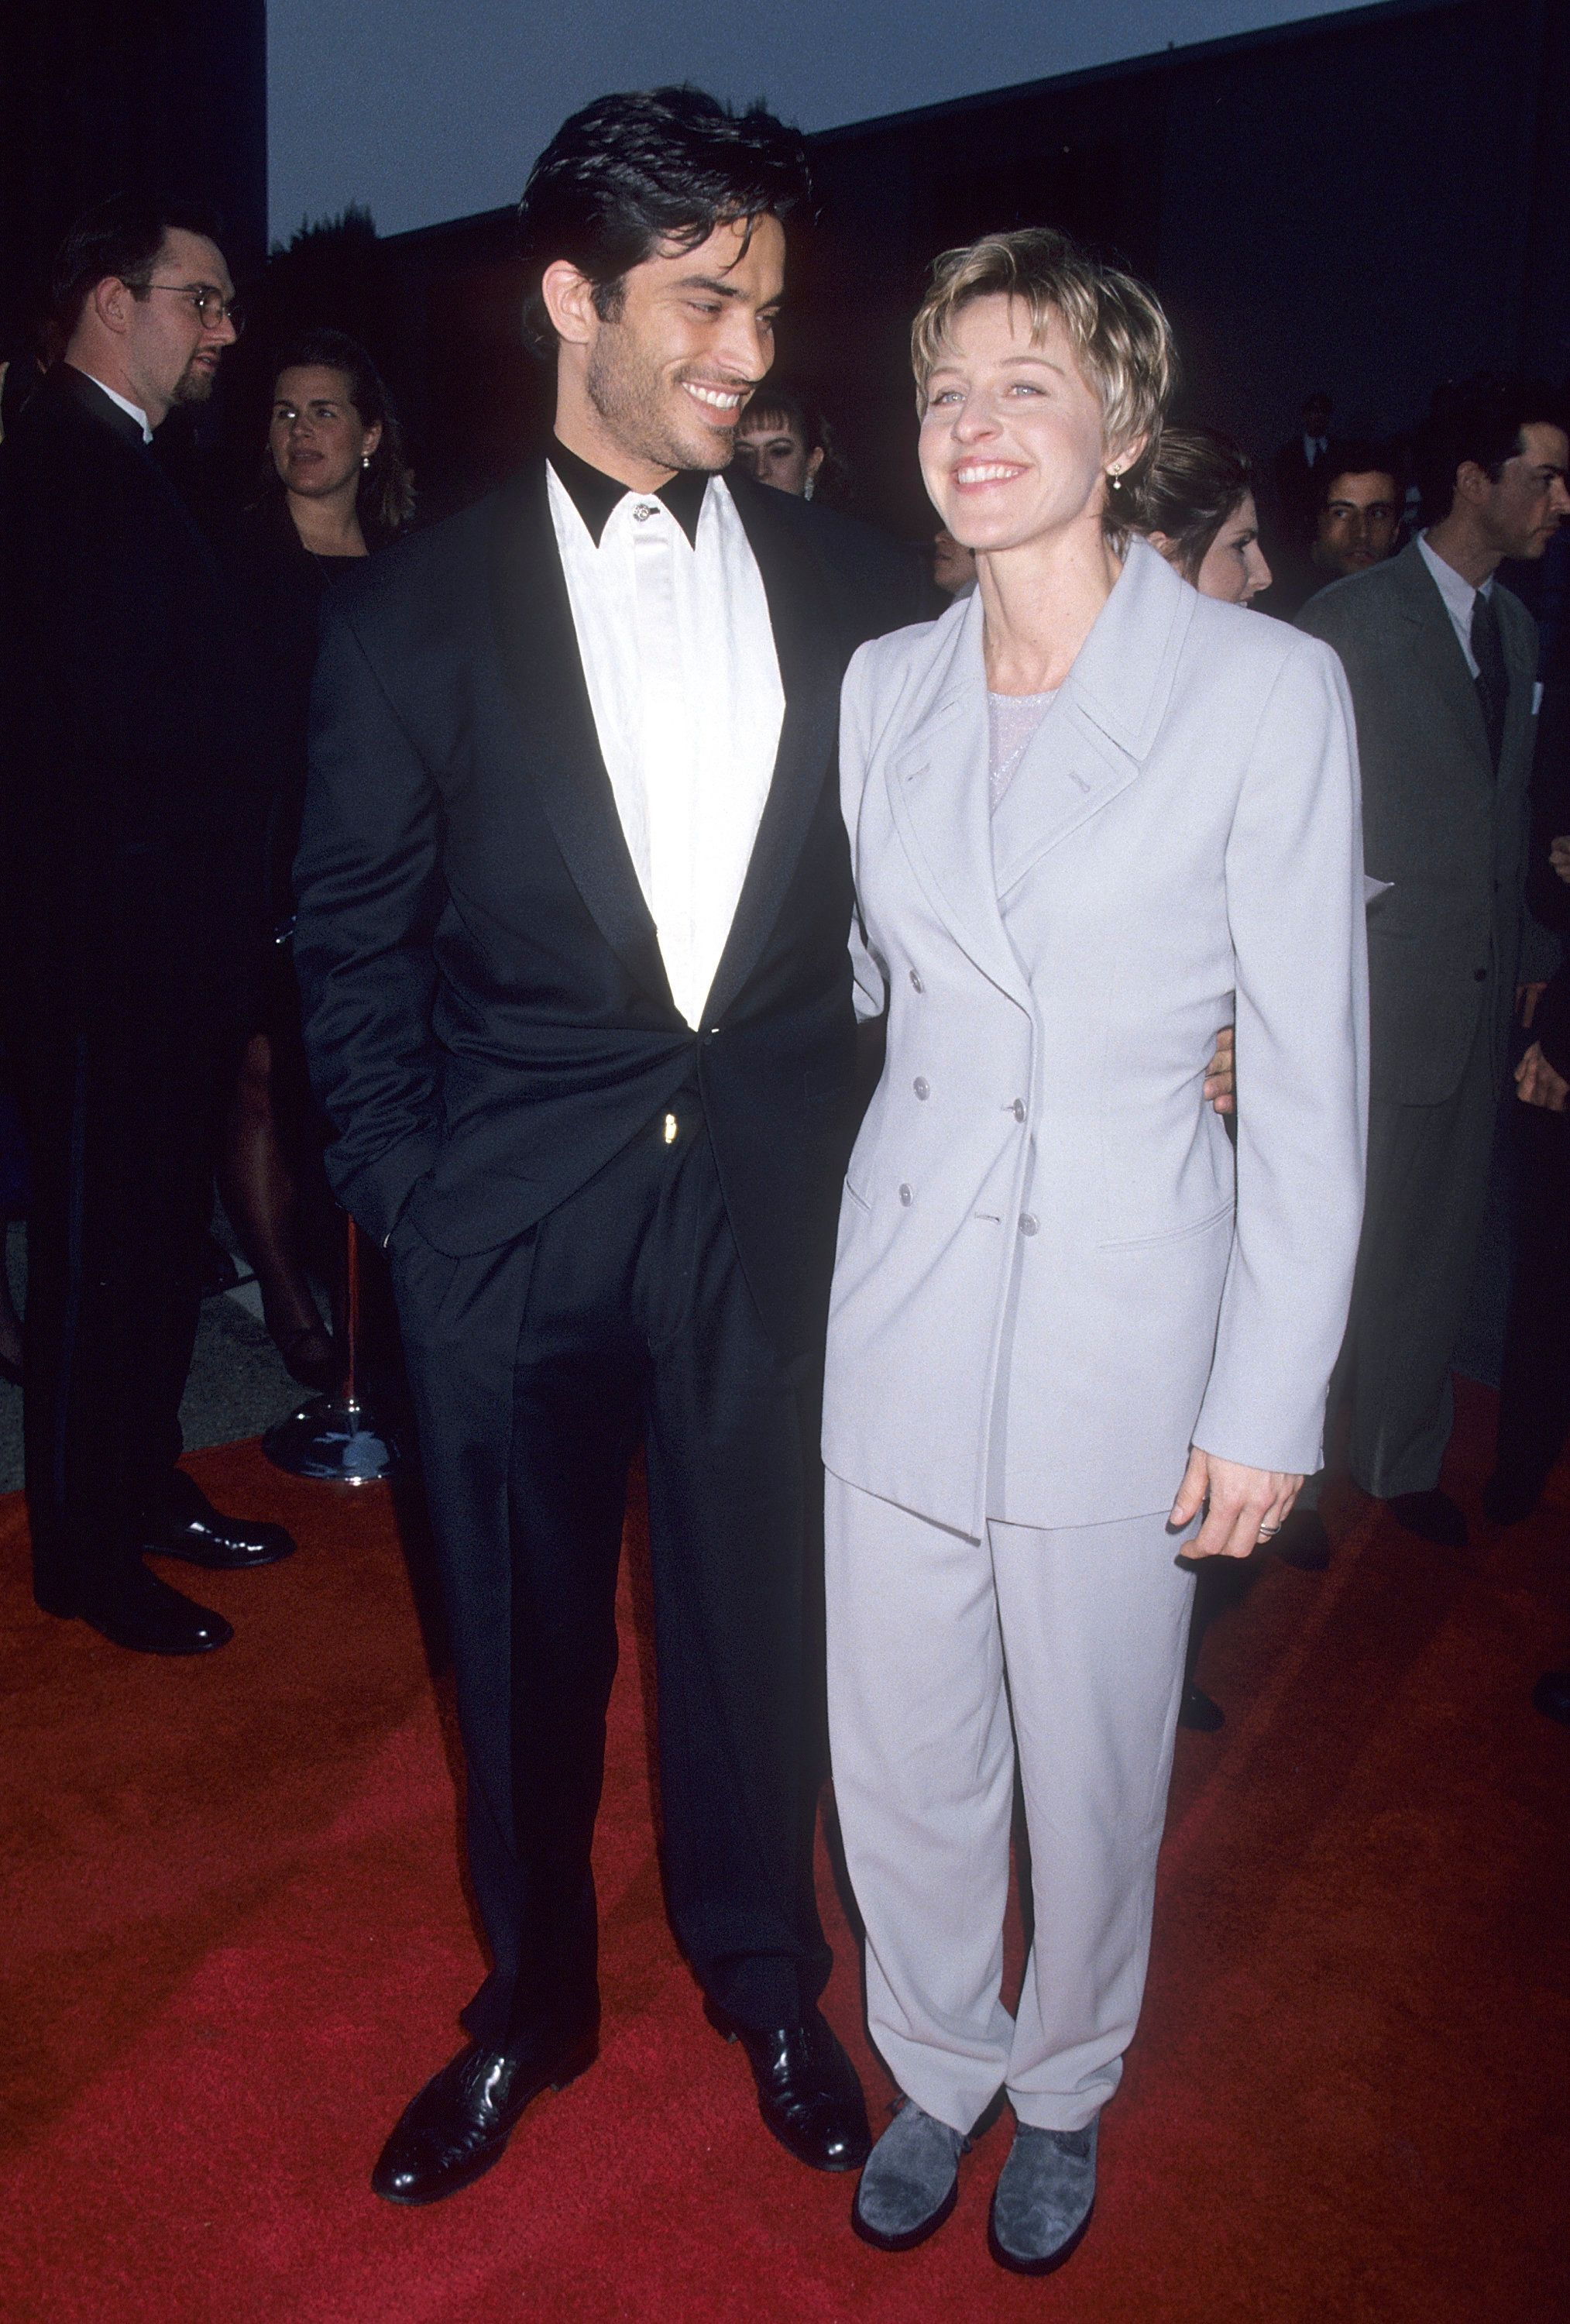 UNIVERSAL CITY, CA - FEBRUARY 25:   Actor Johnathon Schaech and comedienne Ellen DeGeneres attend the First Annual Screen Actors Guild Awards on February 25, 1995 at Sound Stage 12, Universal Studios in Universal City, California. (Photo by Ron Galella, Ltd./WireImage)